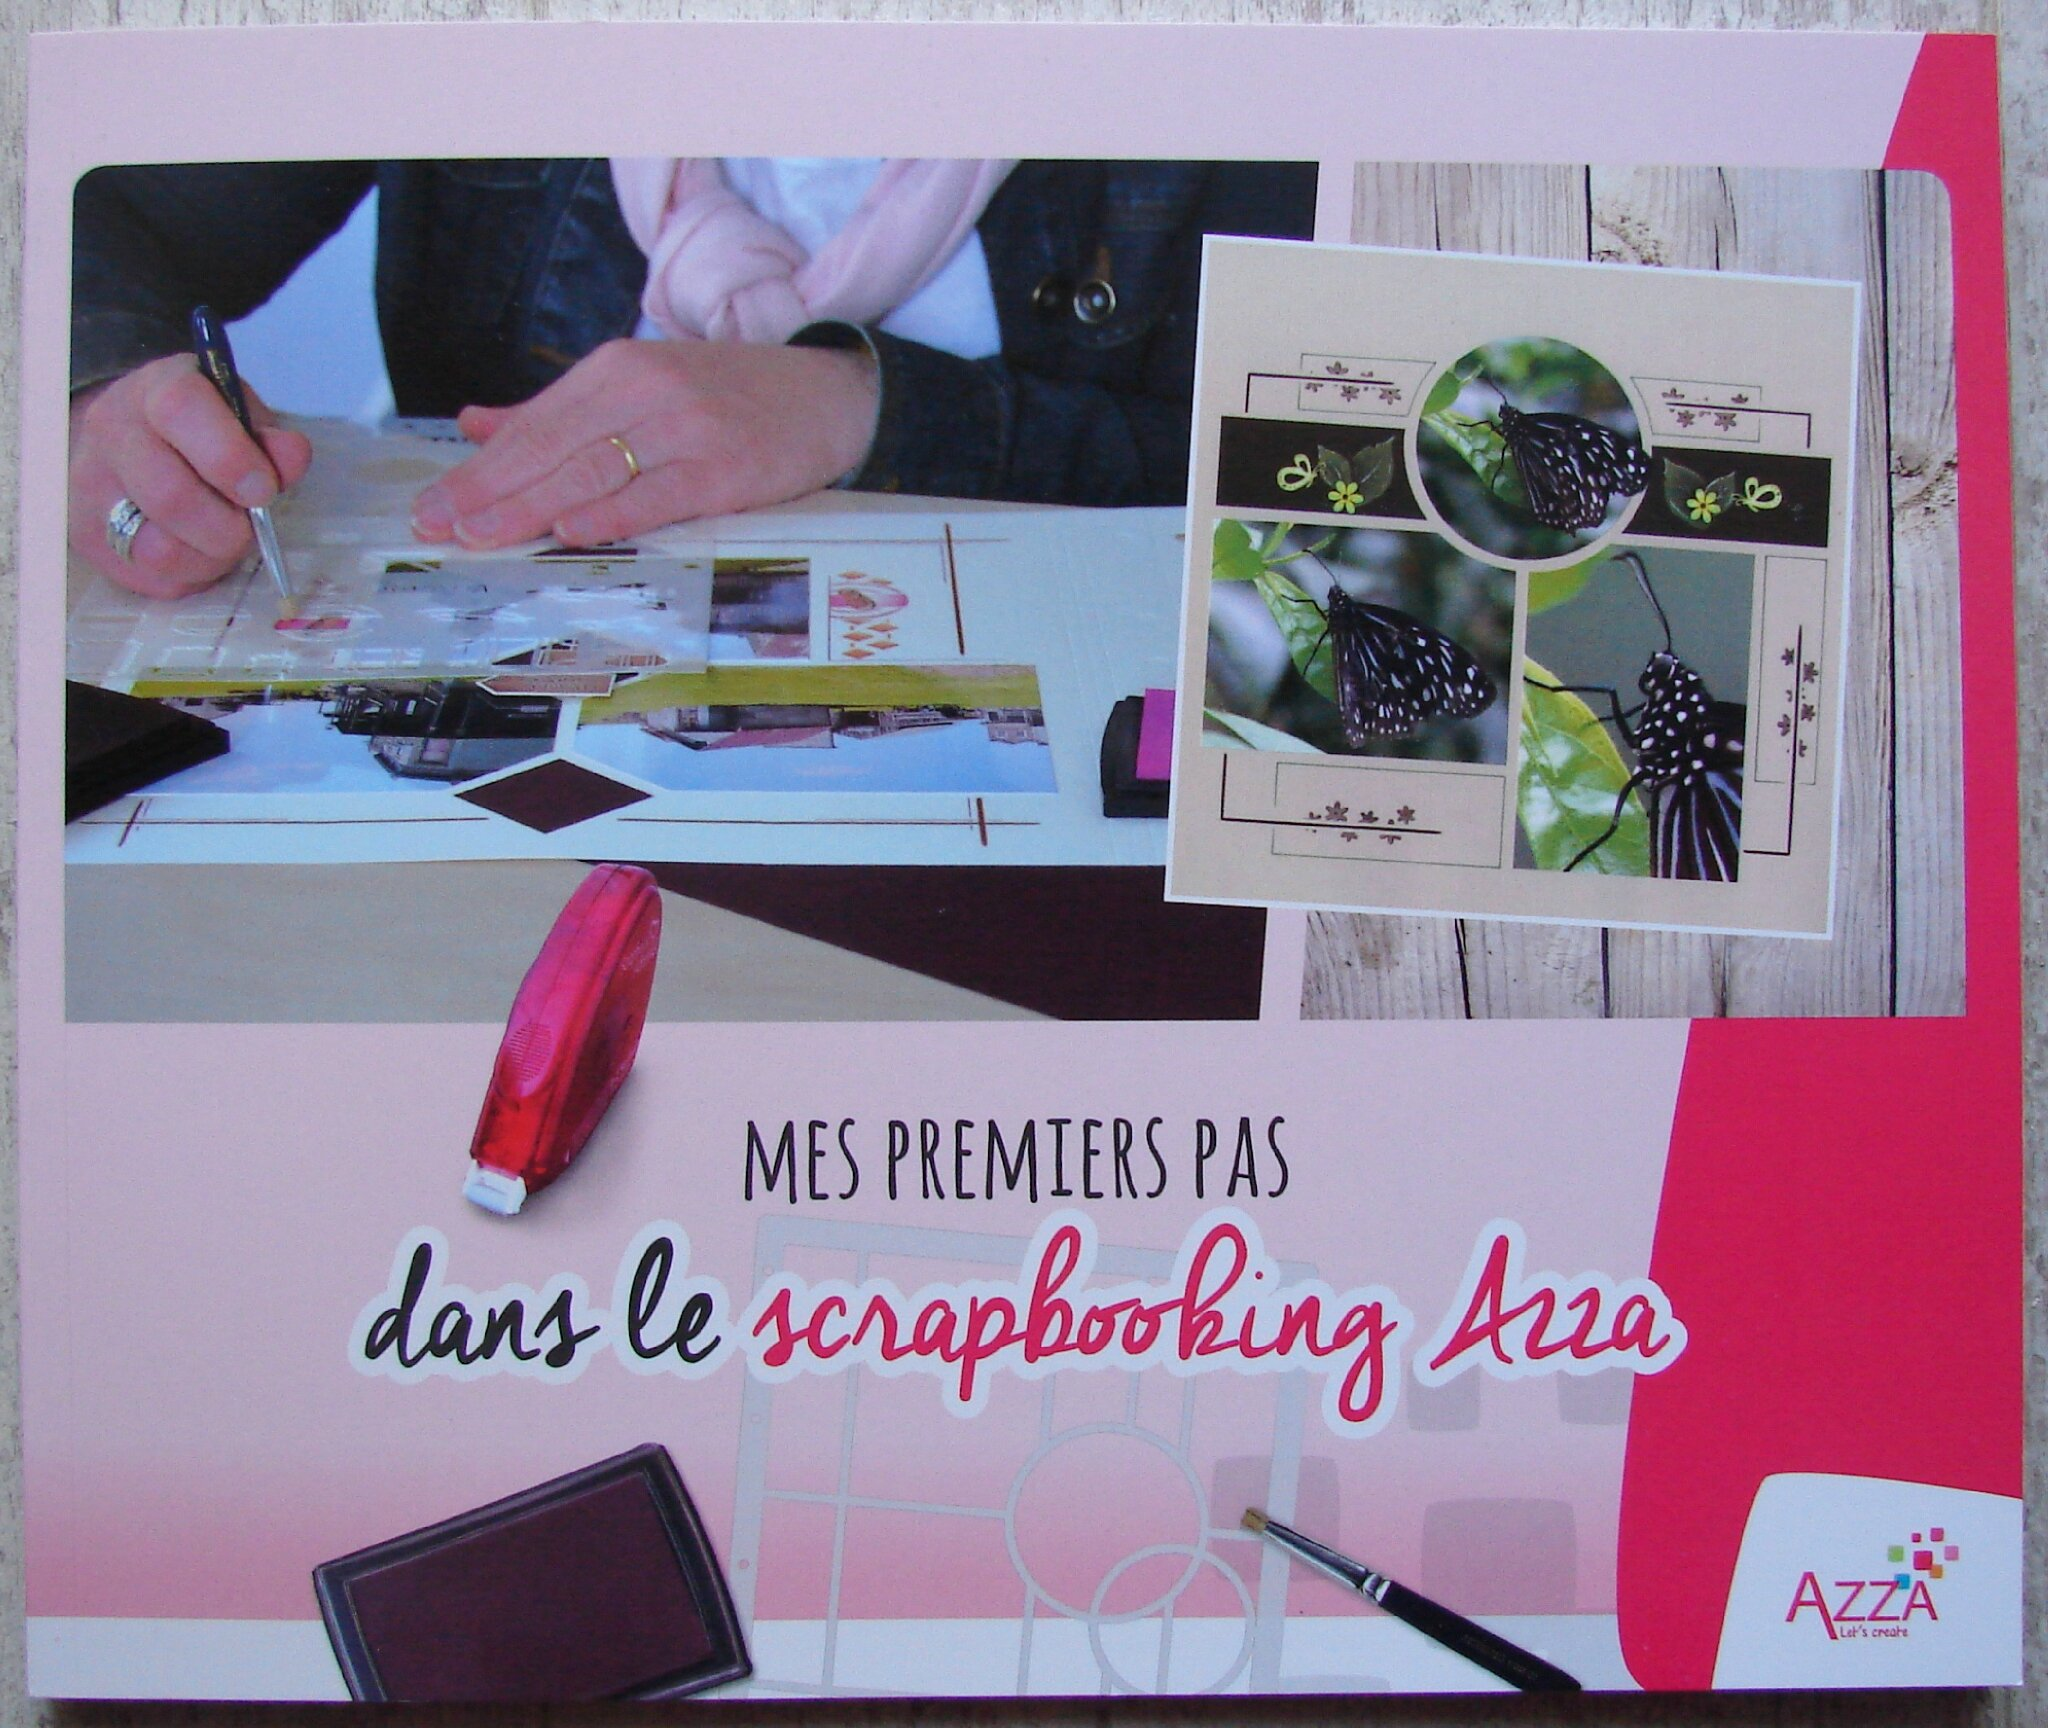 mes premiers pas dans le scrapbooking azza id 39 scrap. Black Bedroom Furniture Sets. Home Design Ideas